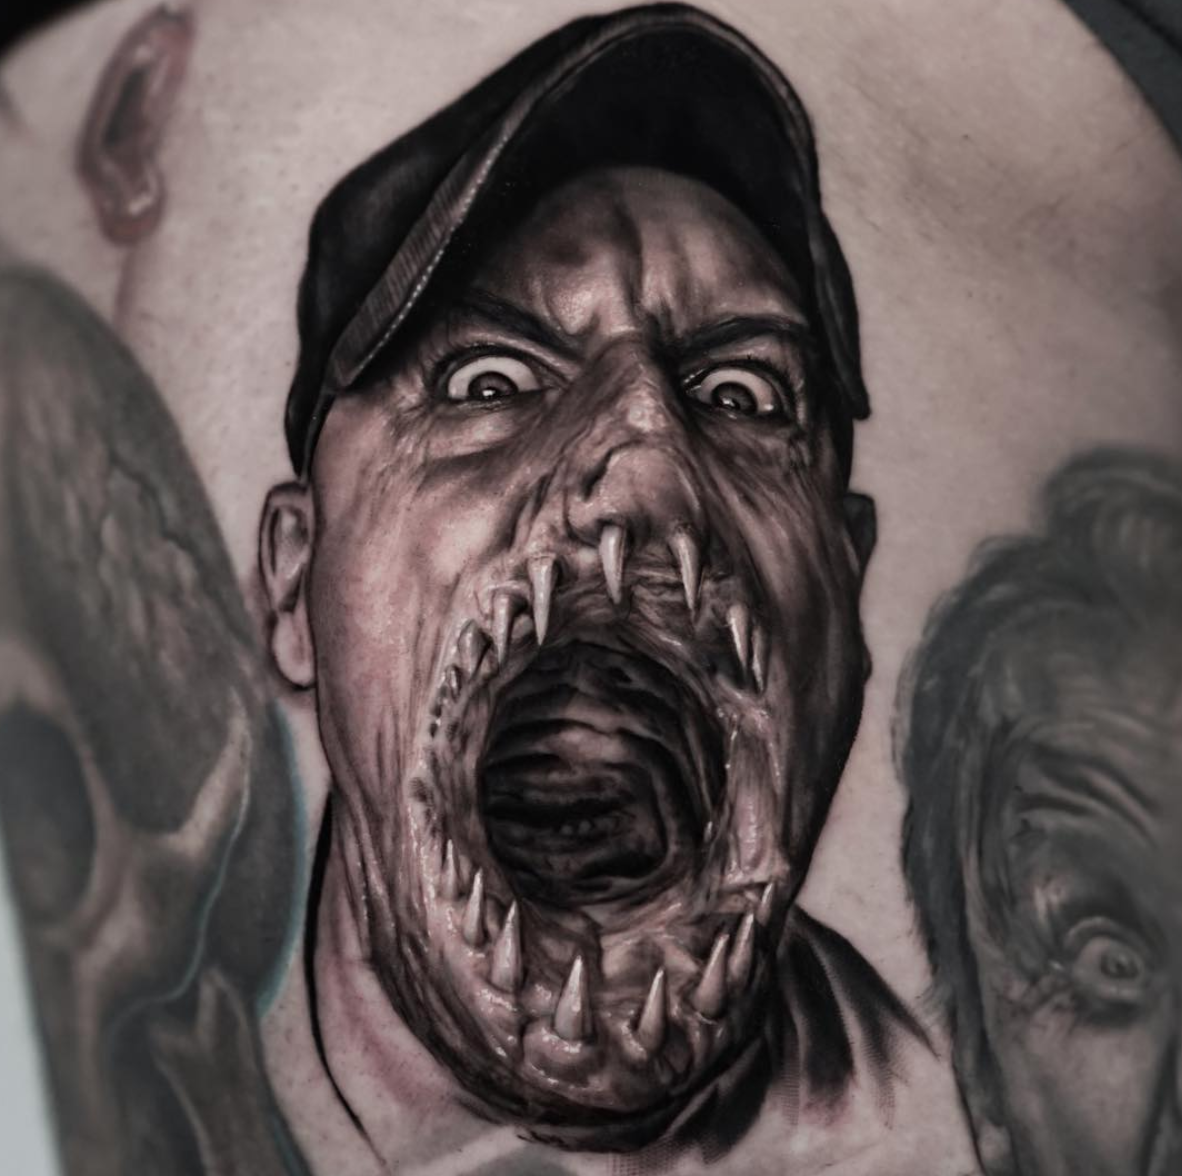 Self-portrait tattoo with a disturbing twist - by @ralfnonnweilerta2